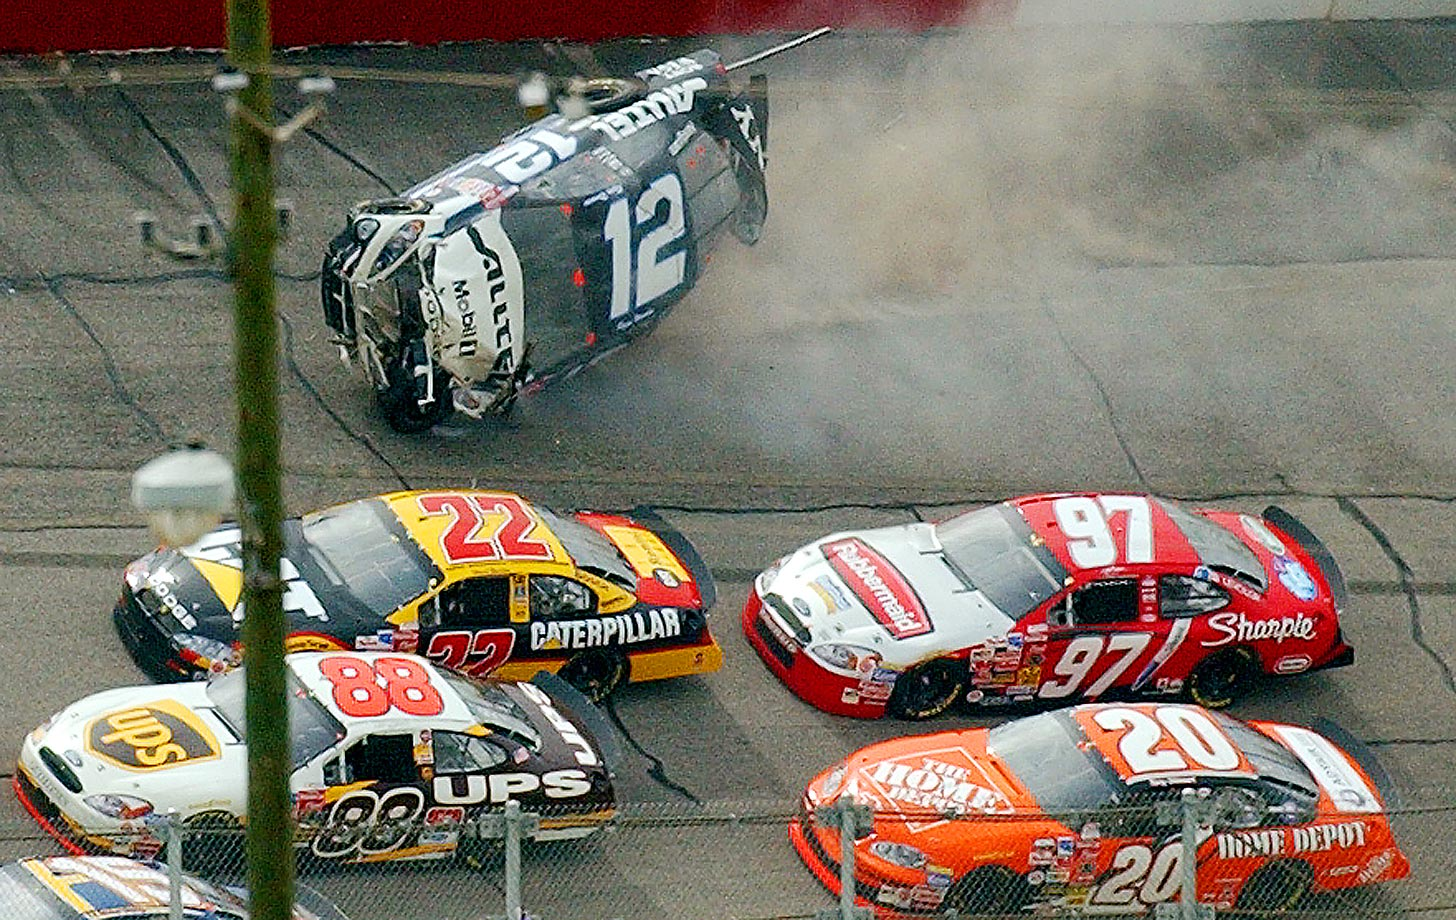 The Big One did not take long, collecting 27 cars on the fourth lap — the largest crash in a Cup race in the modern era. as the field entered turn 1, Ryan Newman blew a tire smashed hard into the Turn 1 wall and almost turned on his side. Mayhem ensued as cars behind him checked up trying to avoid Newman, who spun across the middle of the track and collected an additional 26 cars. Cars involved ranged from no damage to severe damage: Hermie Sadler, Casey Mears, Johnny Benson and some others were out immediately. Rusty Wallace and Jerry Nadeau returned but retired after making a limited number of laps following repairs. Matt Kenseth and race winner Dale Earnhardt, Jr. also had damage, only 16 cars finished with now damage at all.